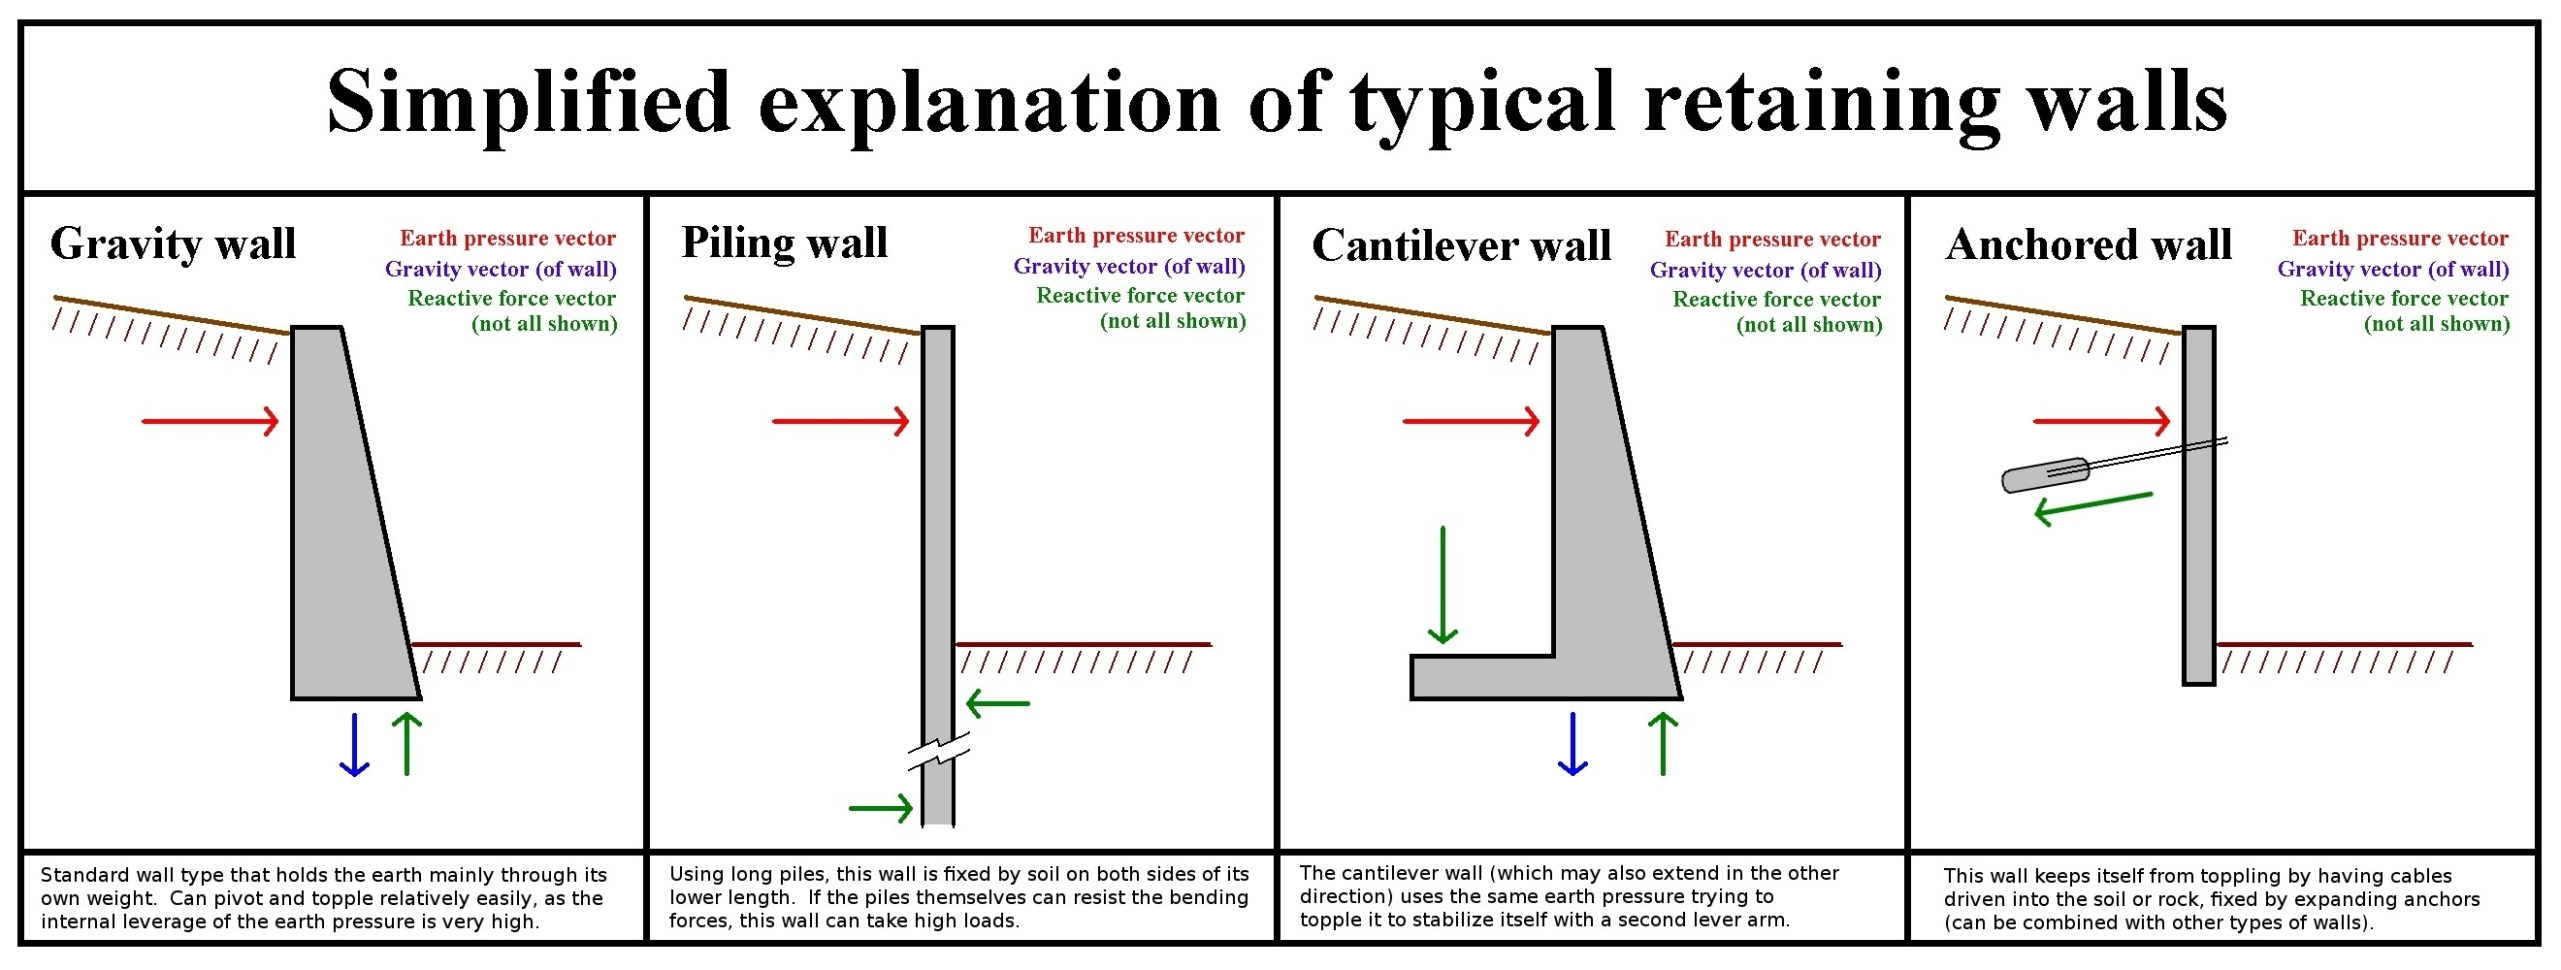 Wall Footing Design Spreadsheet For Retaining Wall Footing Design Reinforced Concrete Wall Design New